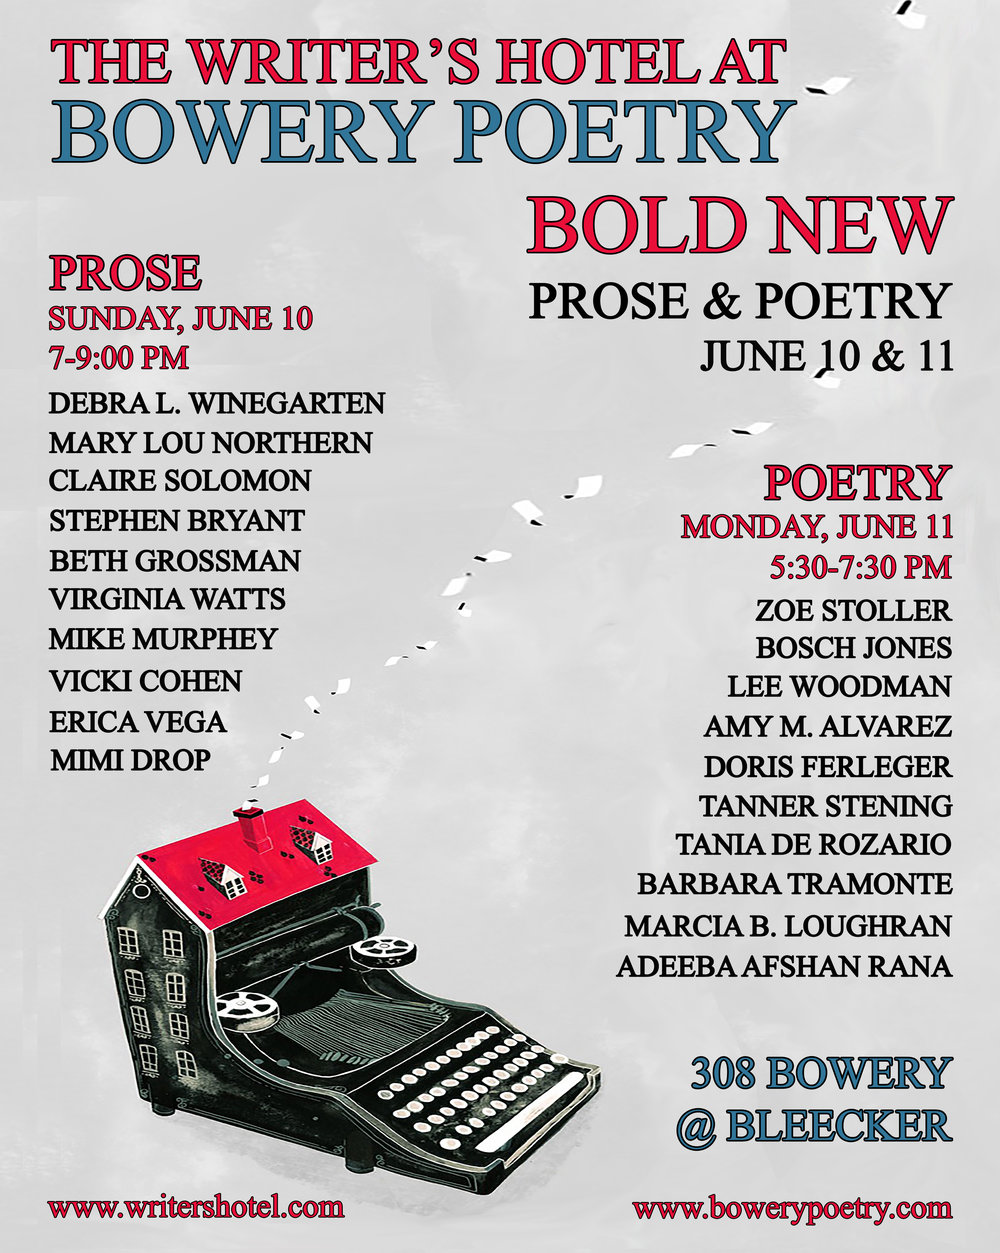 BOWERY POETRY 2018-FINAL-FLAT-LG.jpg